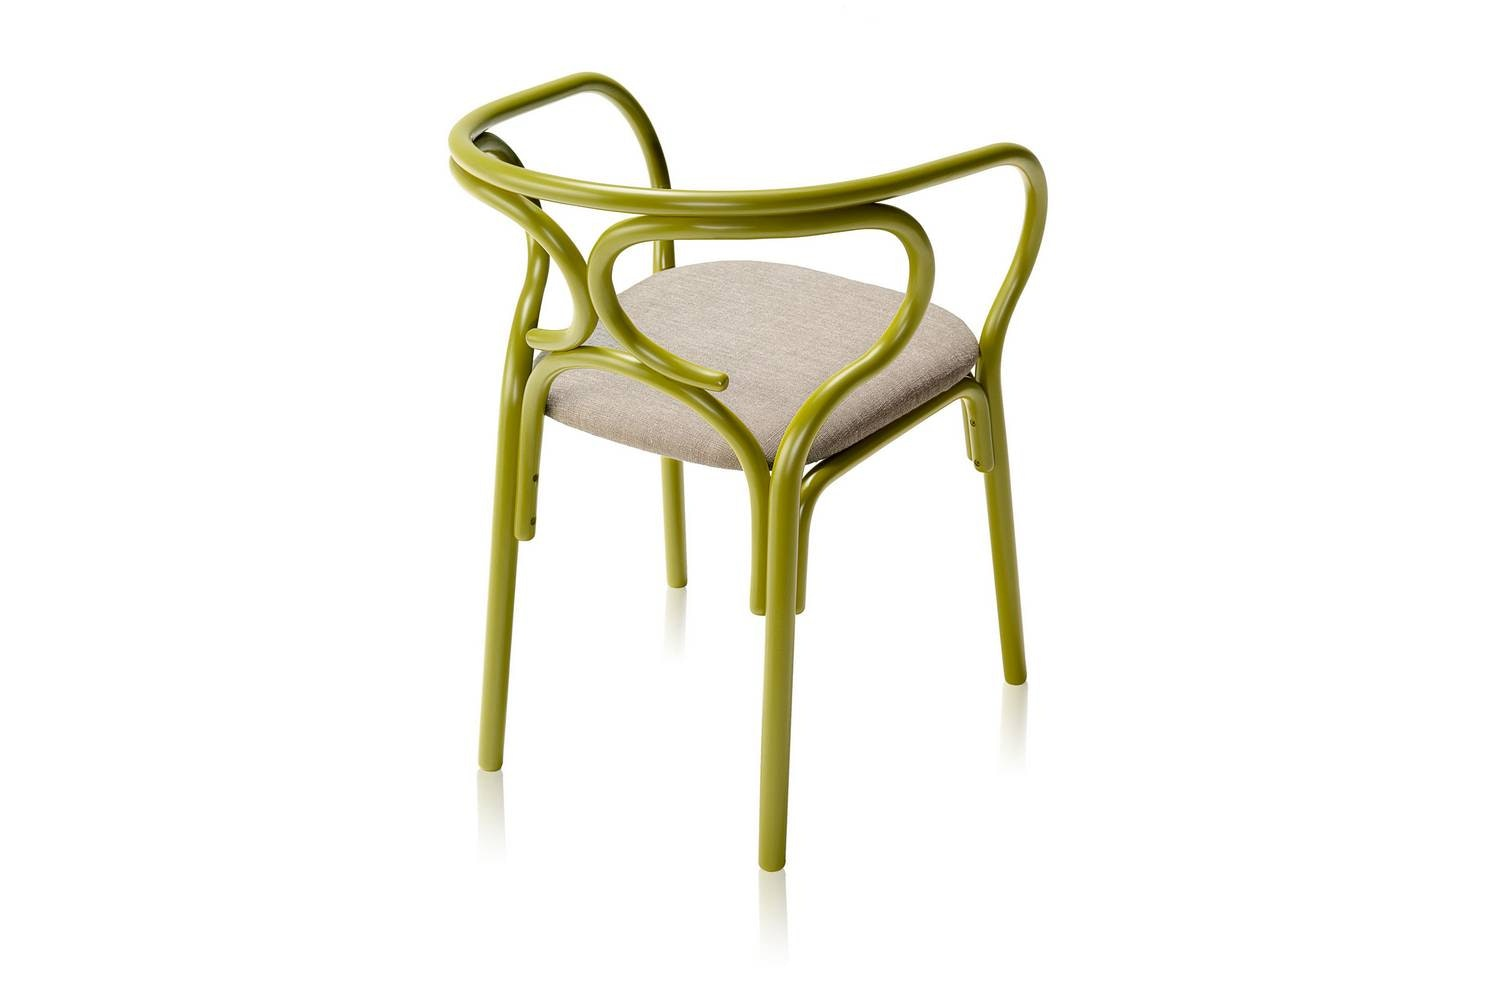 Brezel Chair by Lucidi & Pevere for Wiener GTV Design